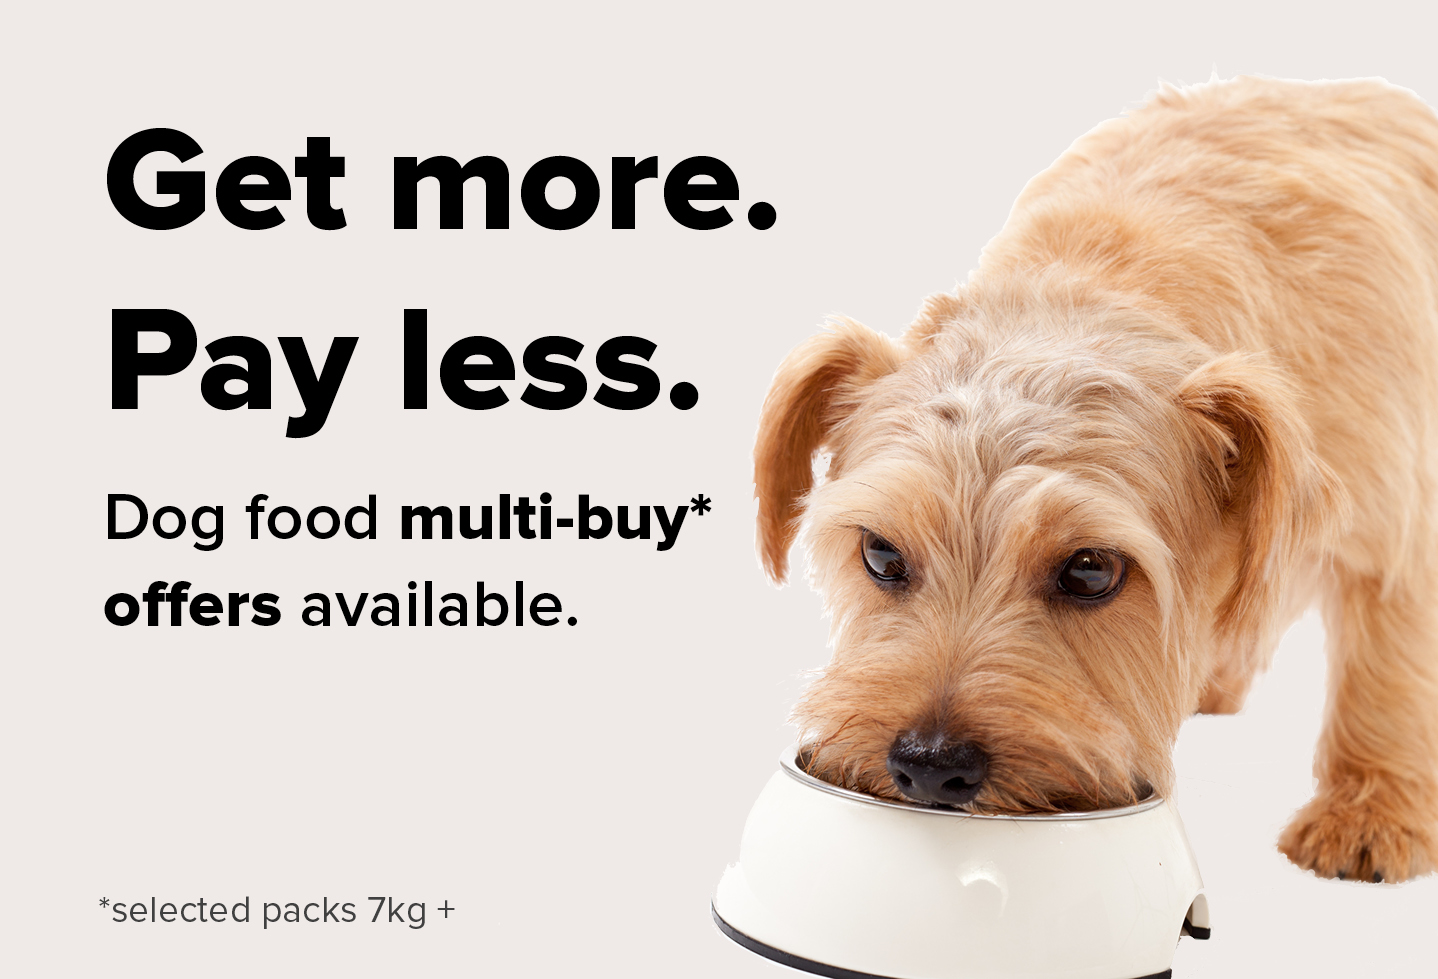 We've got some great multi-buy offers on dog food!